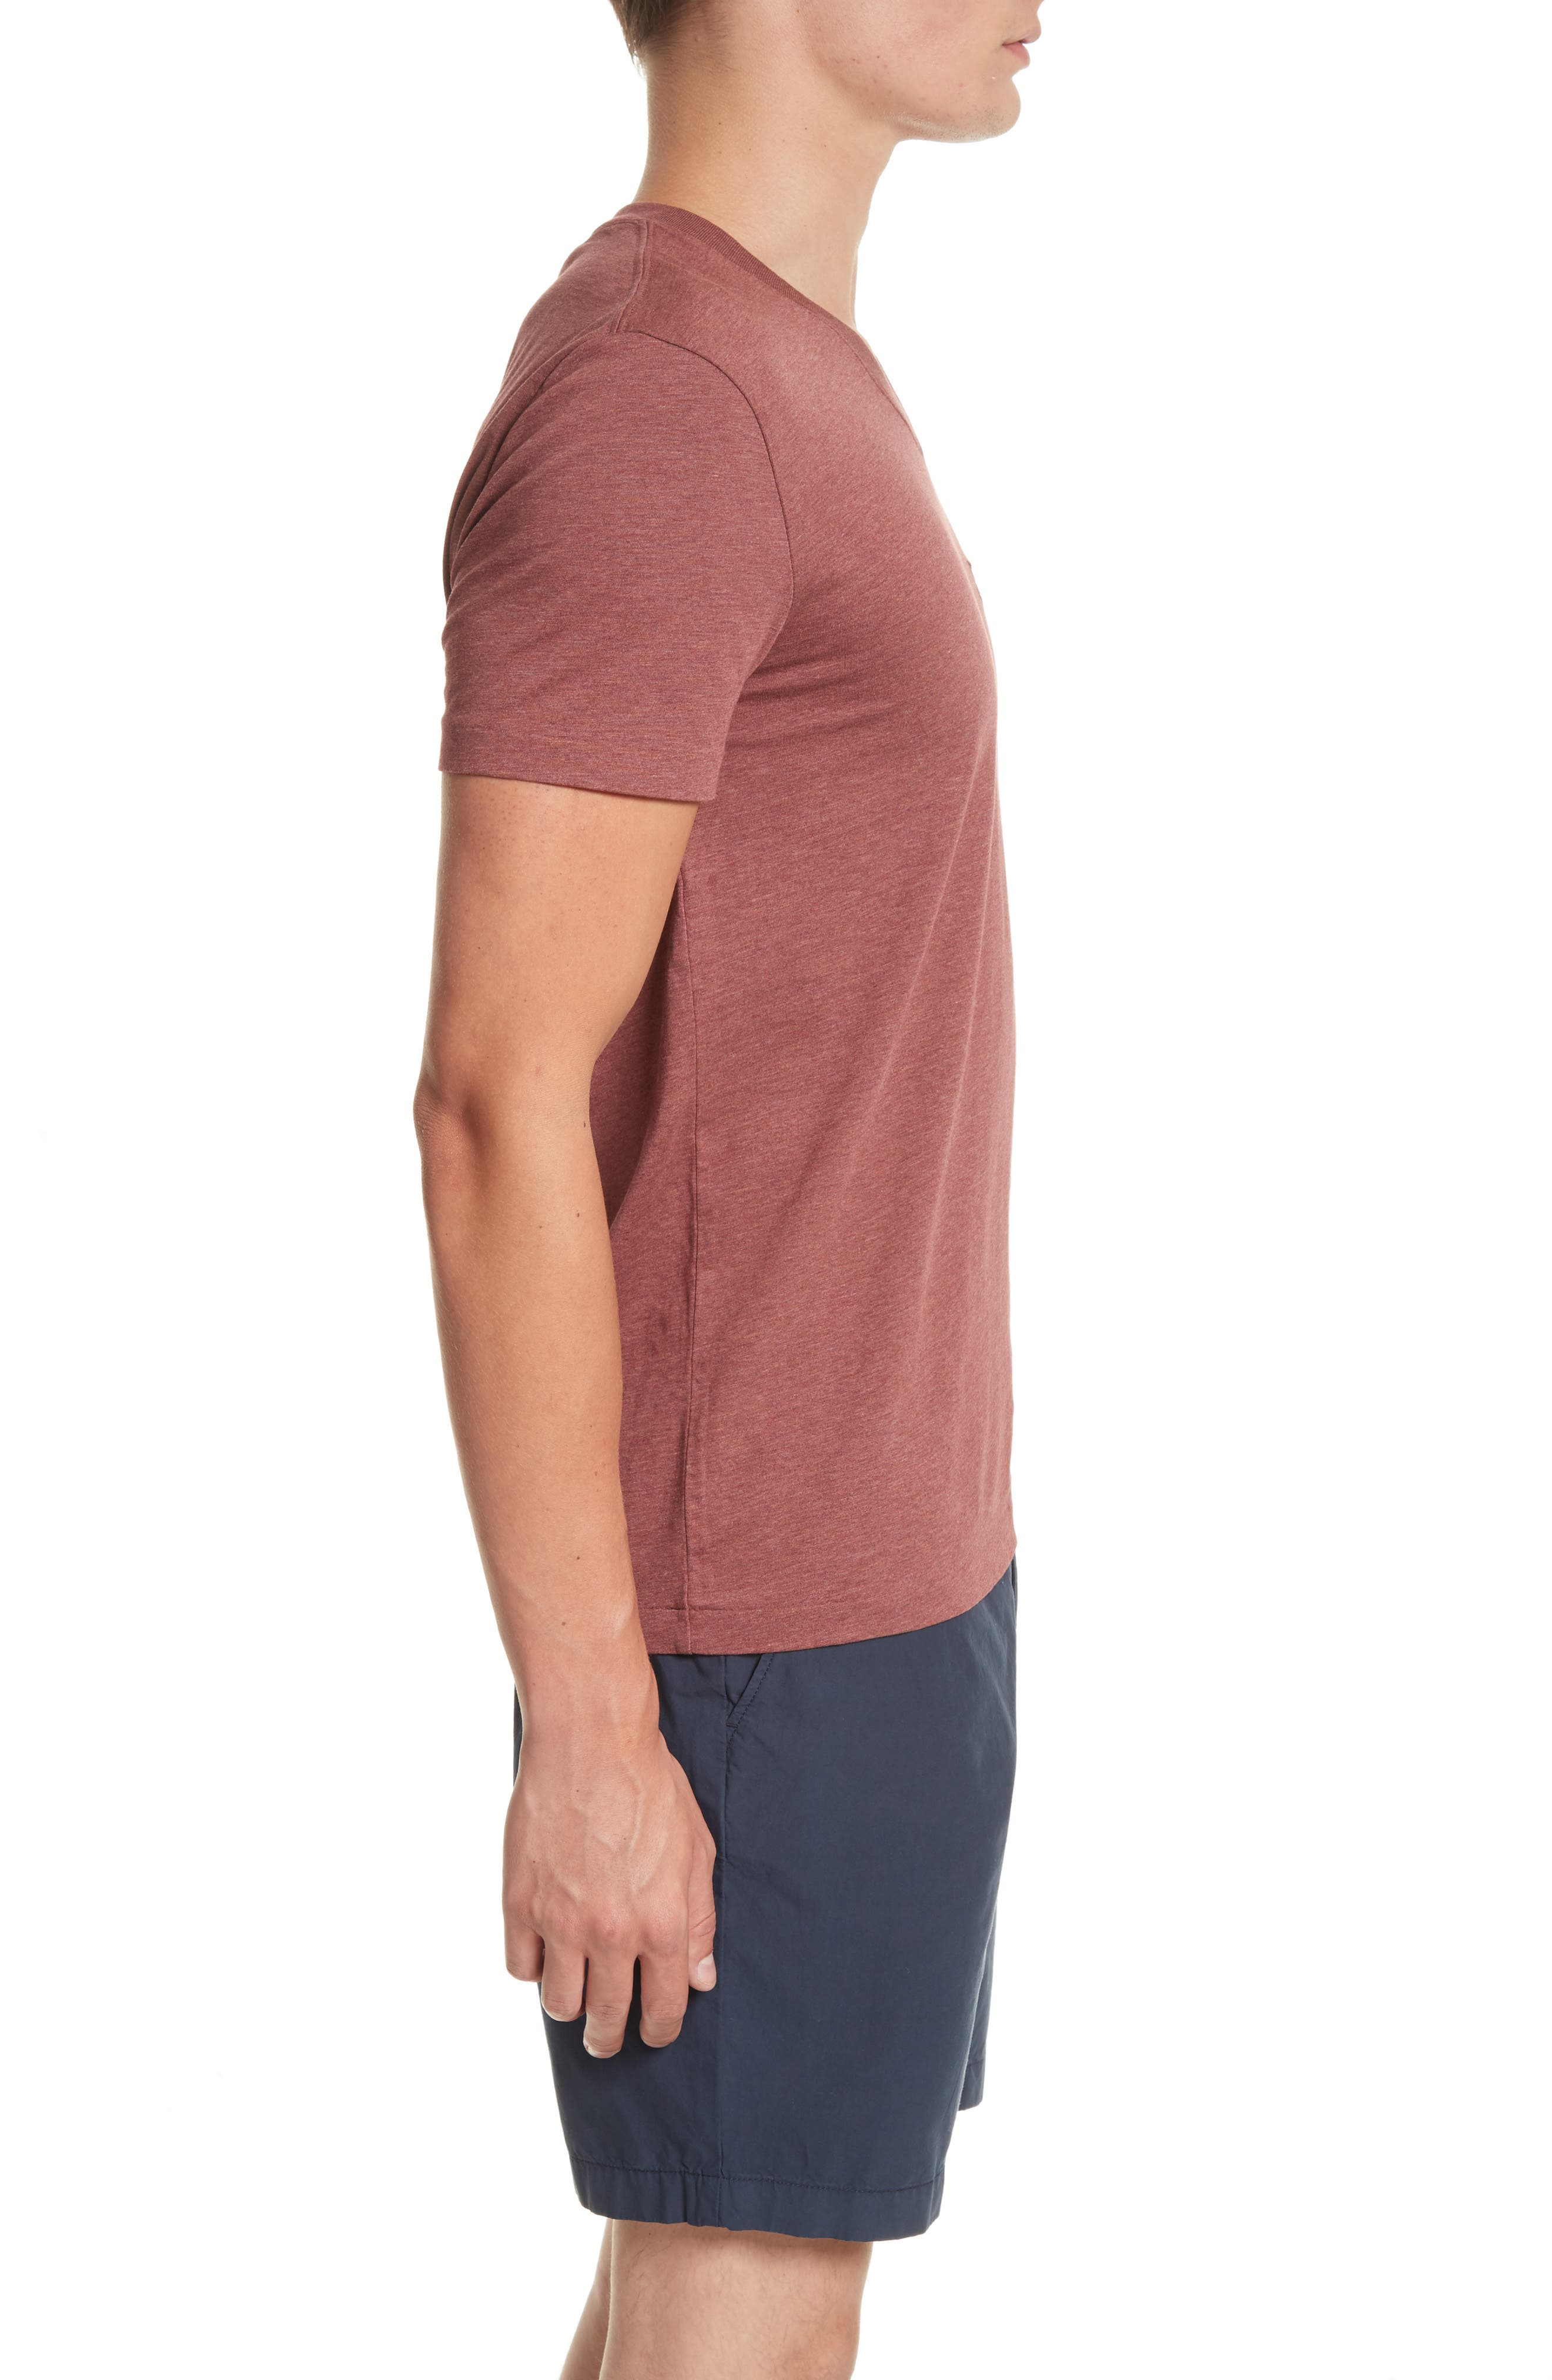 Lindon Cotton T-Shirt,                             Alternate thumbnail 3, color,                             Russet Melange